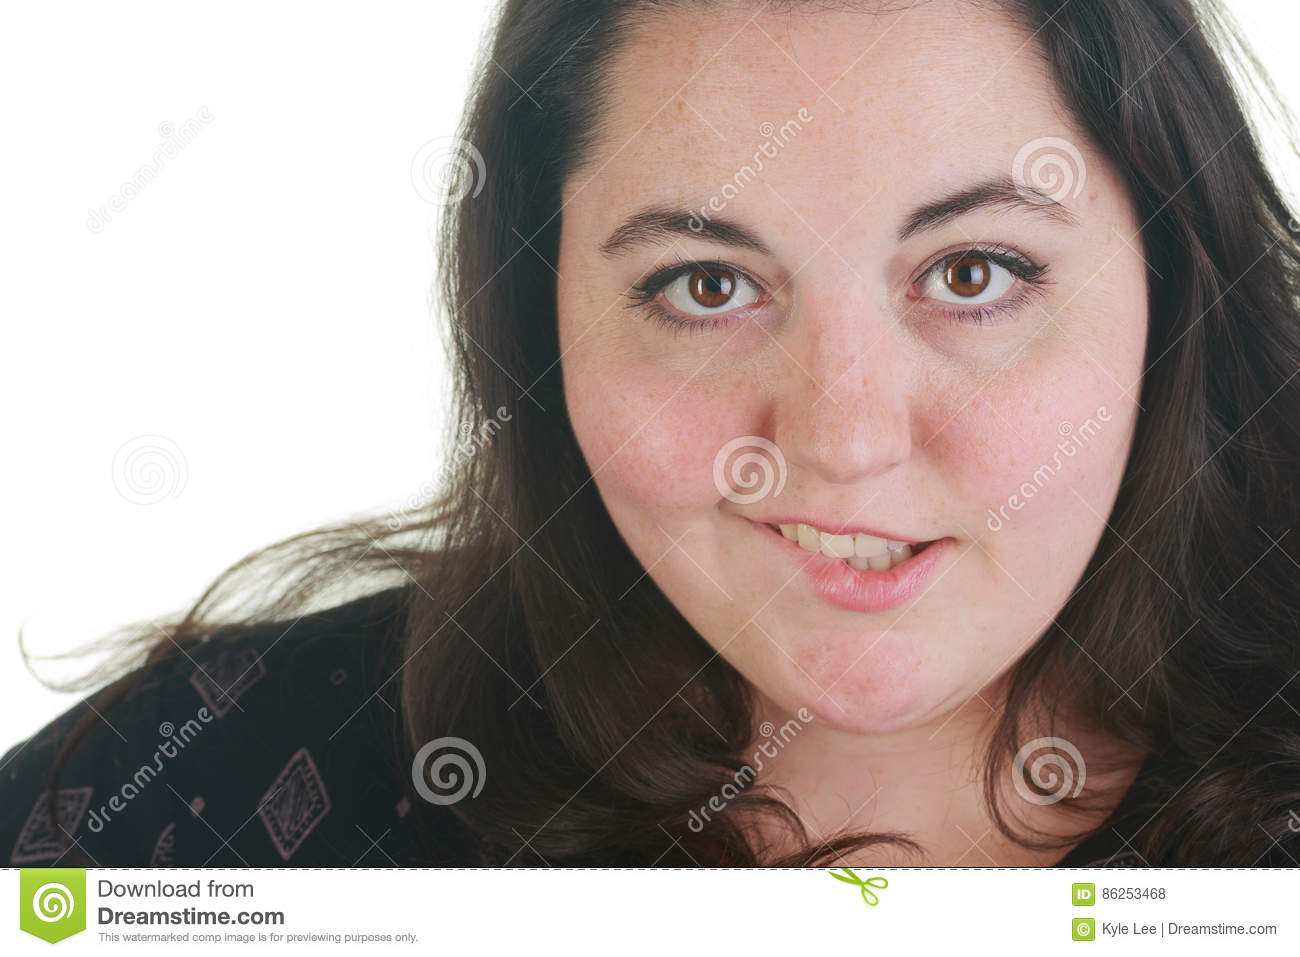 plus size woman posing in the studio stock photo - image of topless